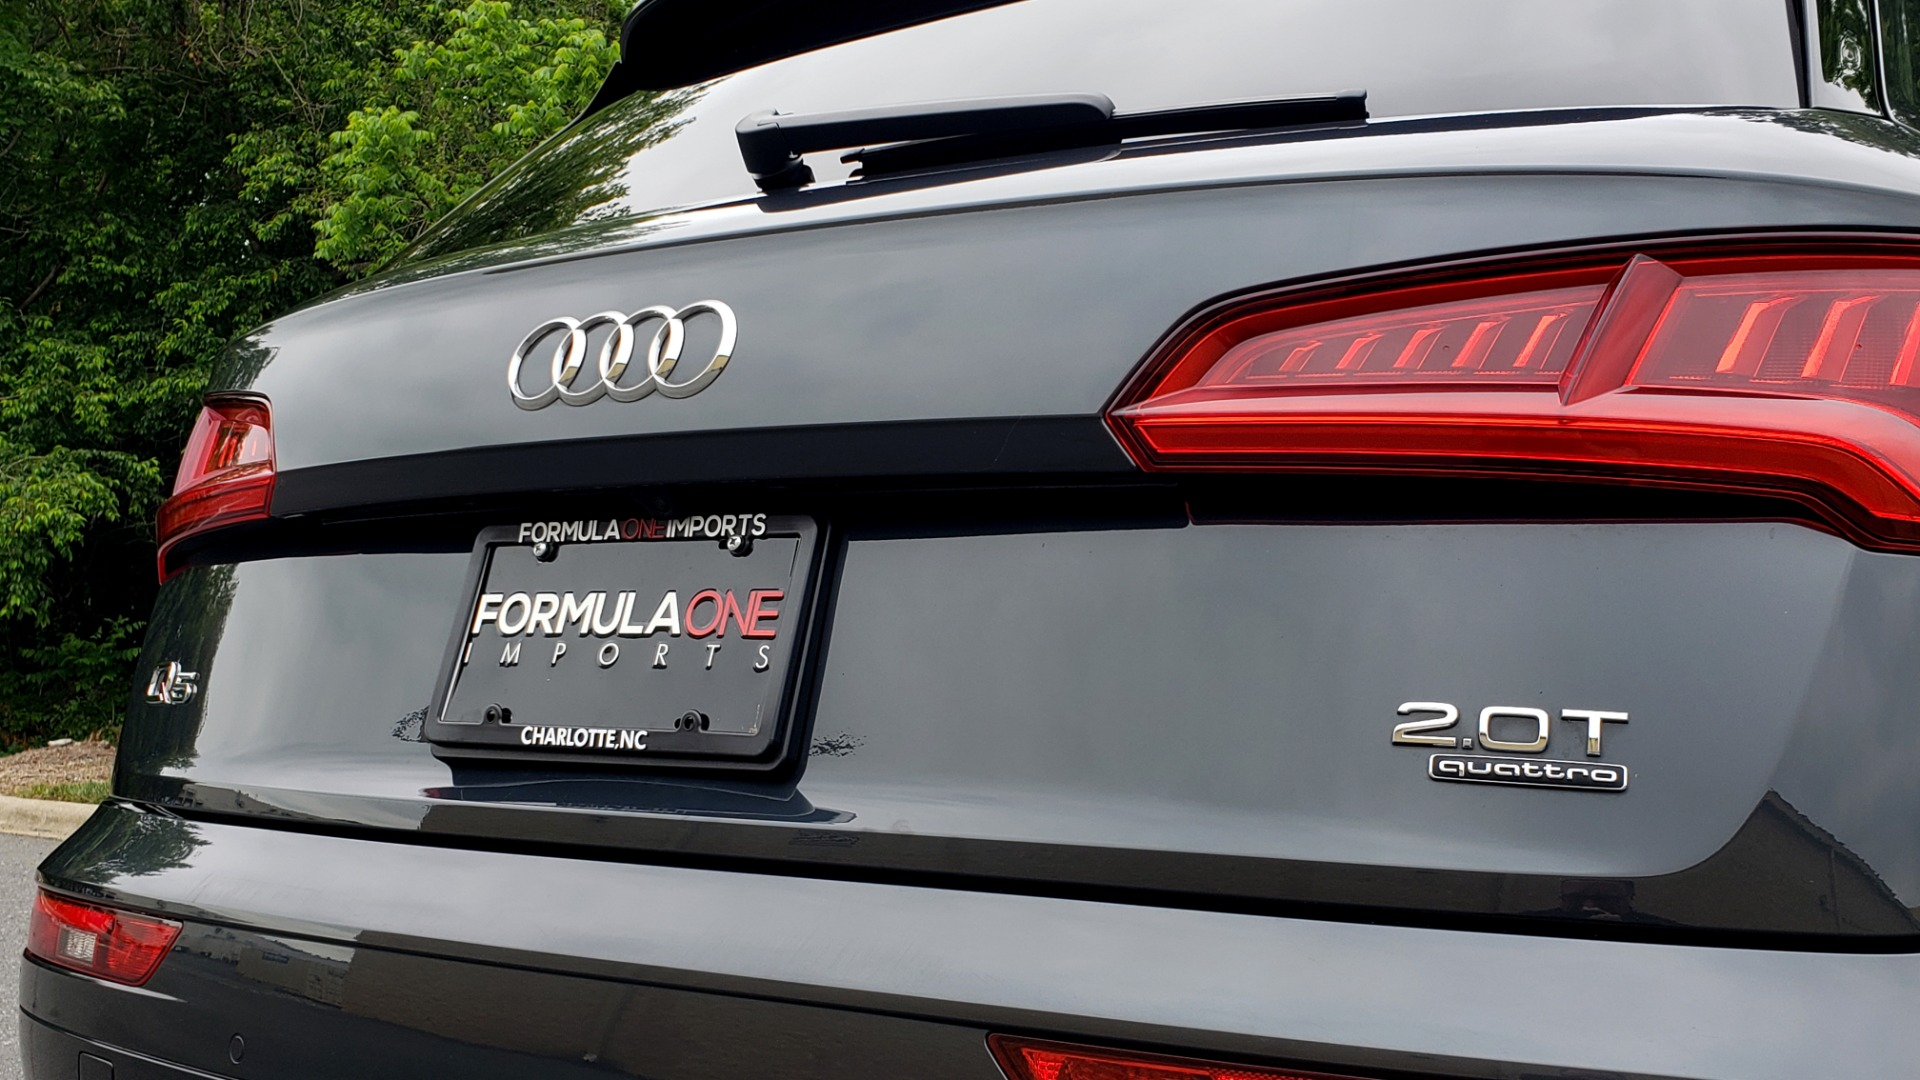 Used 2018 Audi Q5 PREMIUM PLUS / S-TRONIC / NAV / PANO-ROOF / PARK SYS PLUS for sale Sold at Formula Imports in Charlotte NC 28227 31